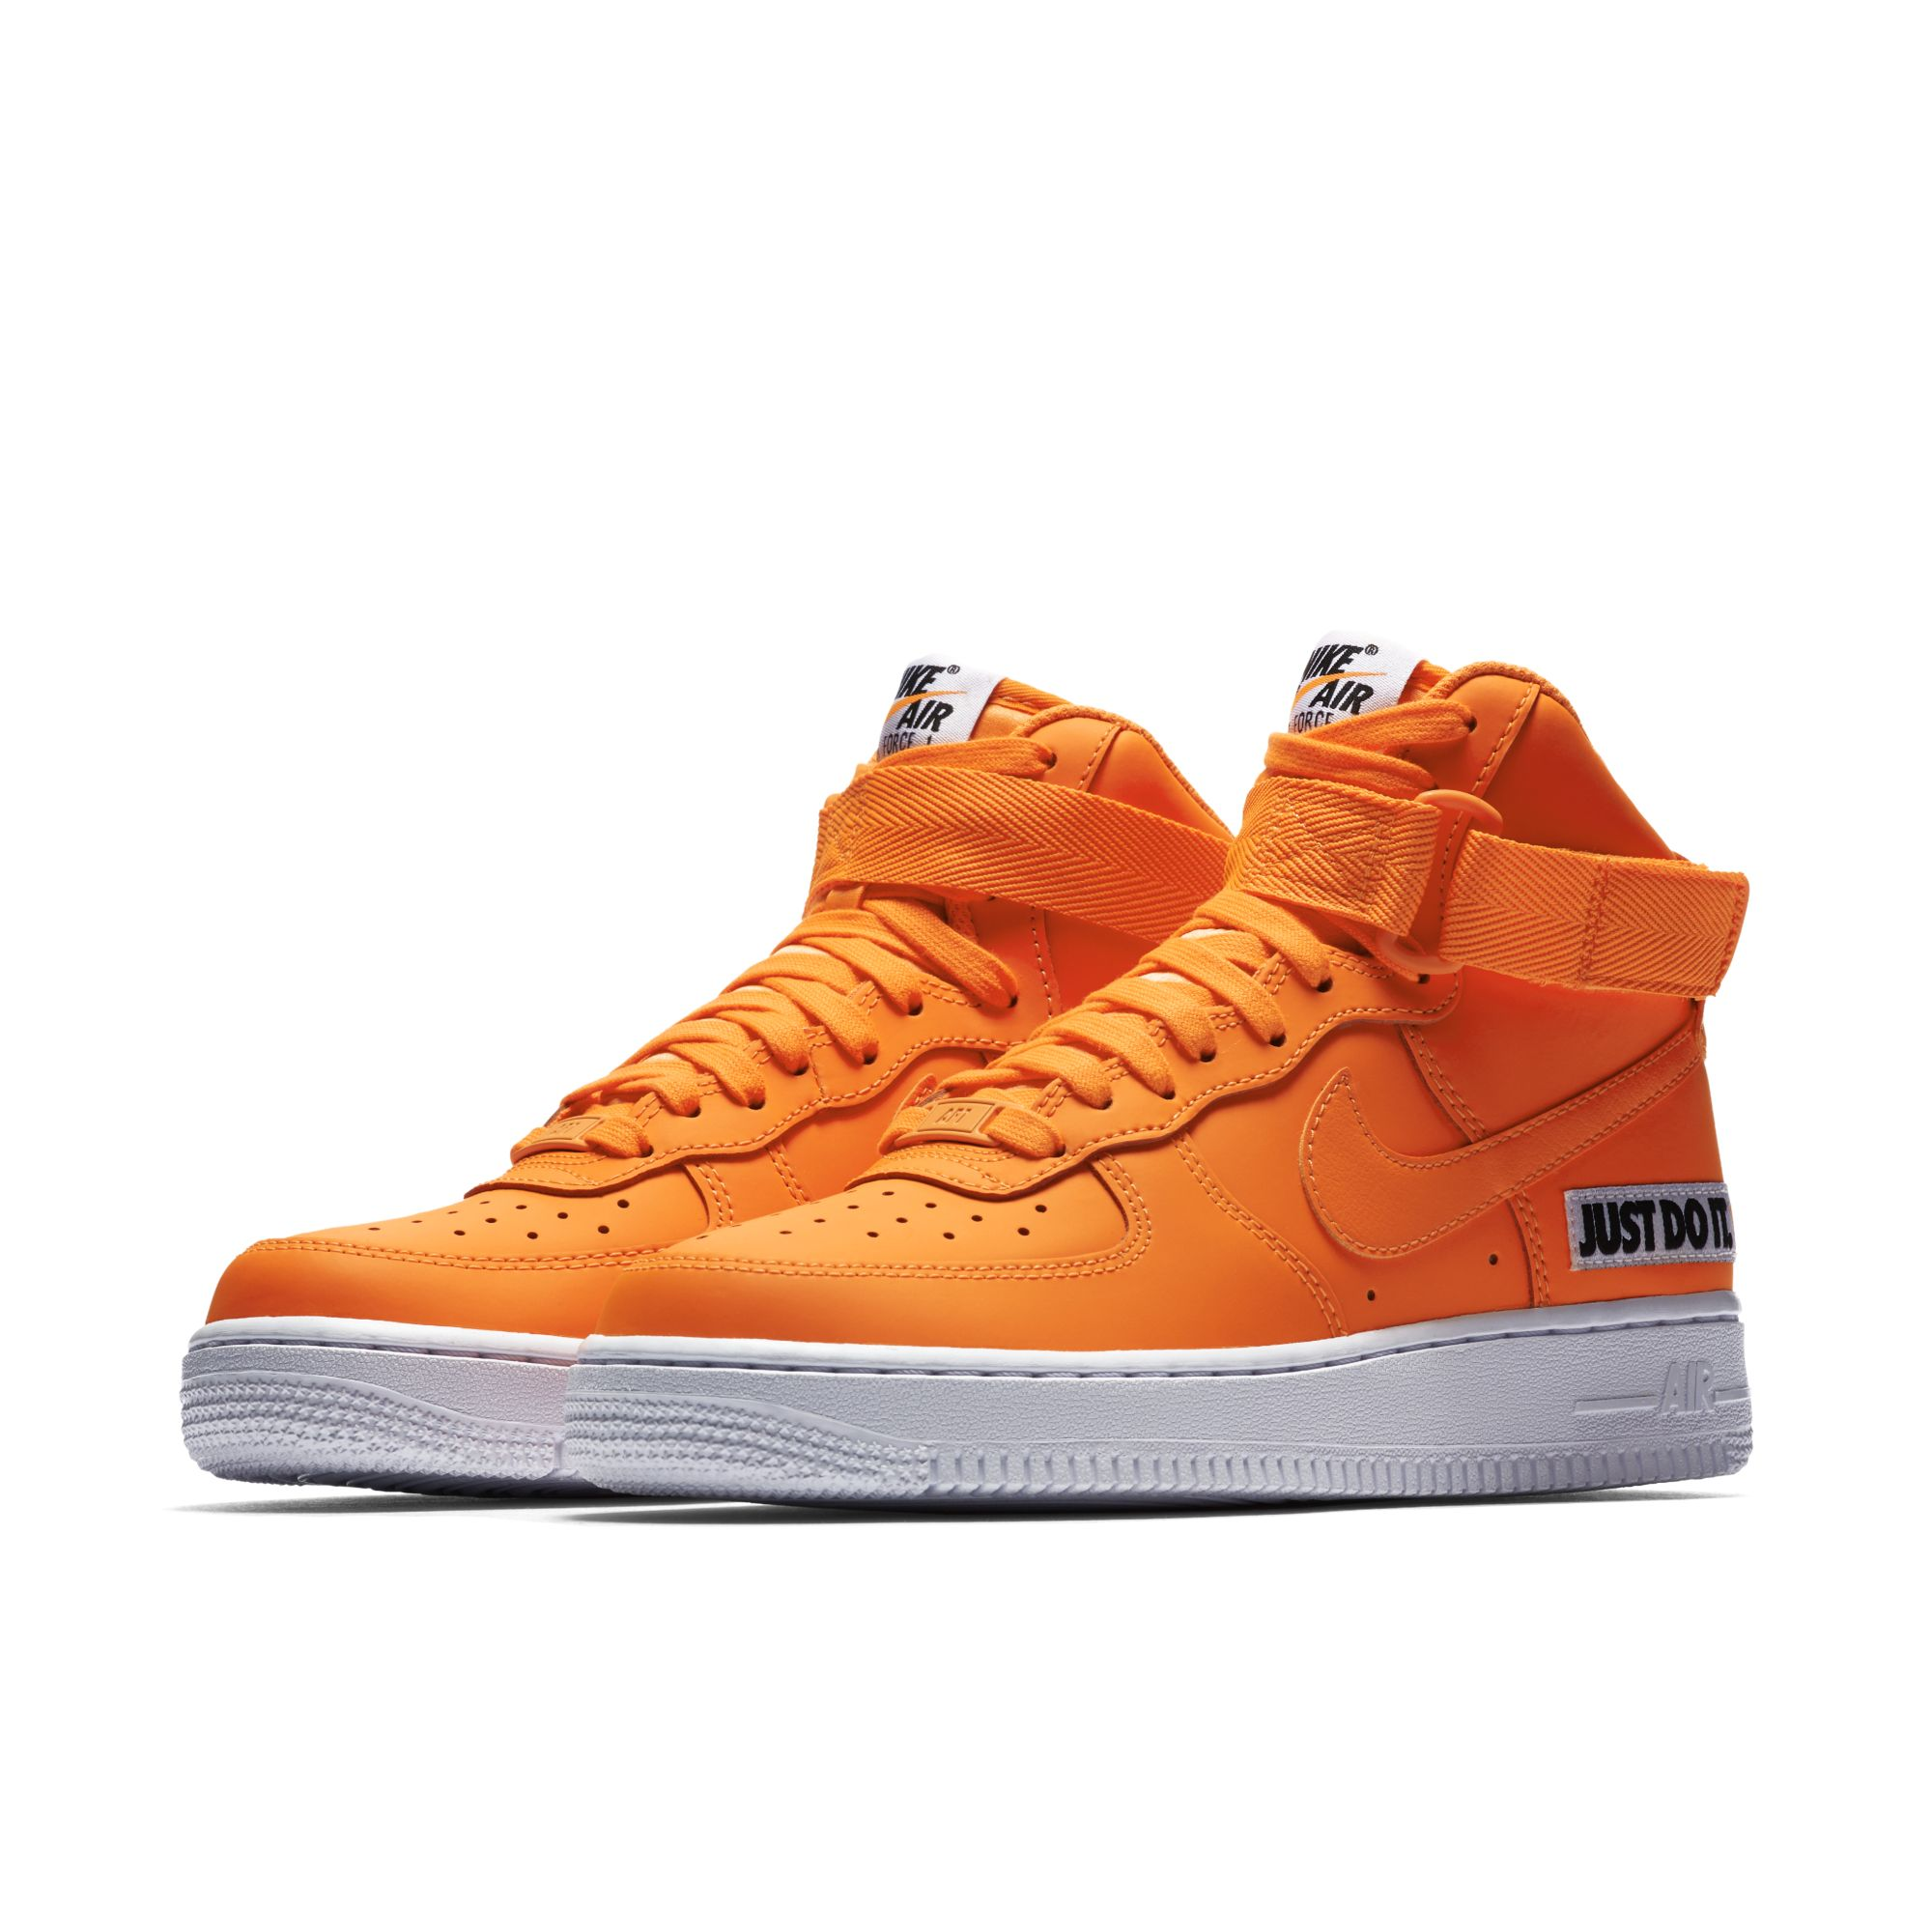 Another Air Force 1 High 'Just Do It